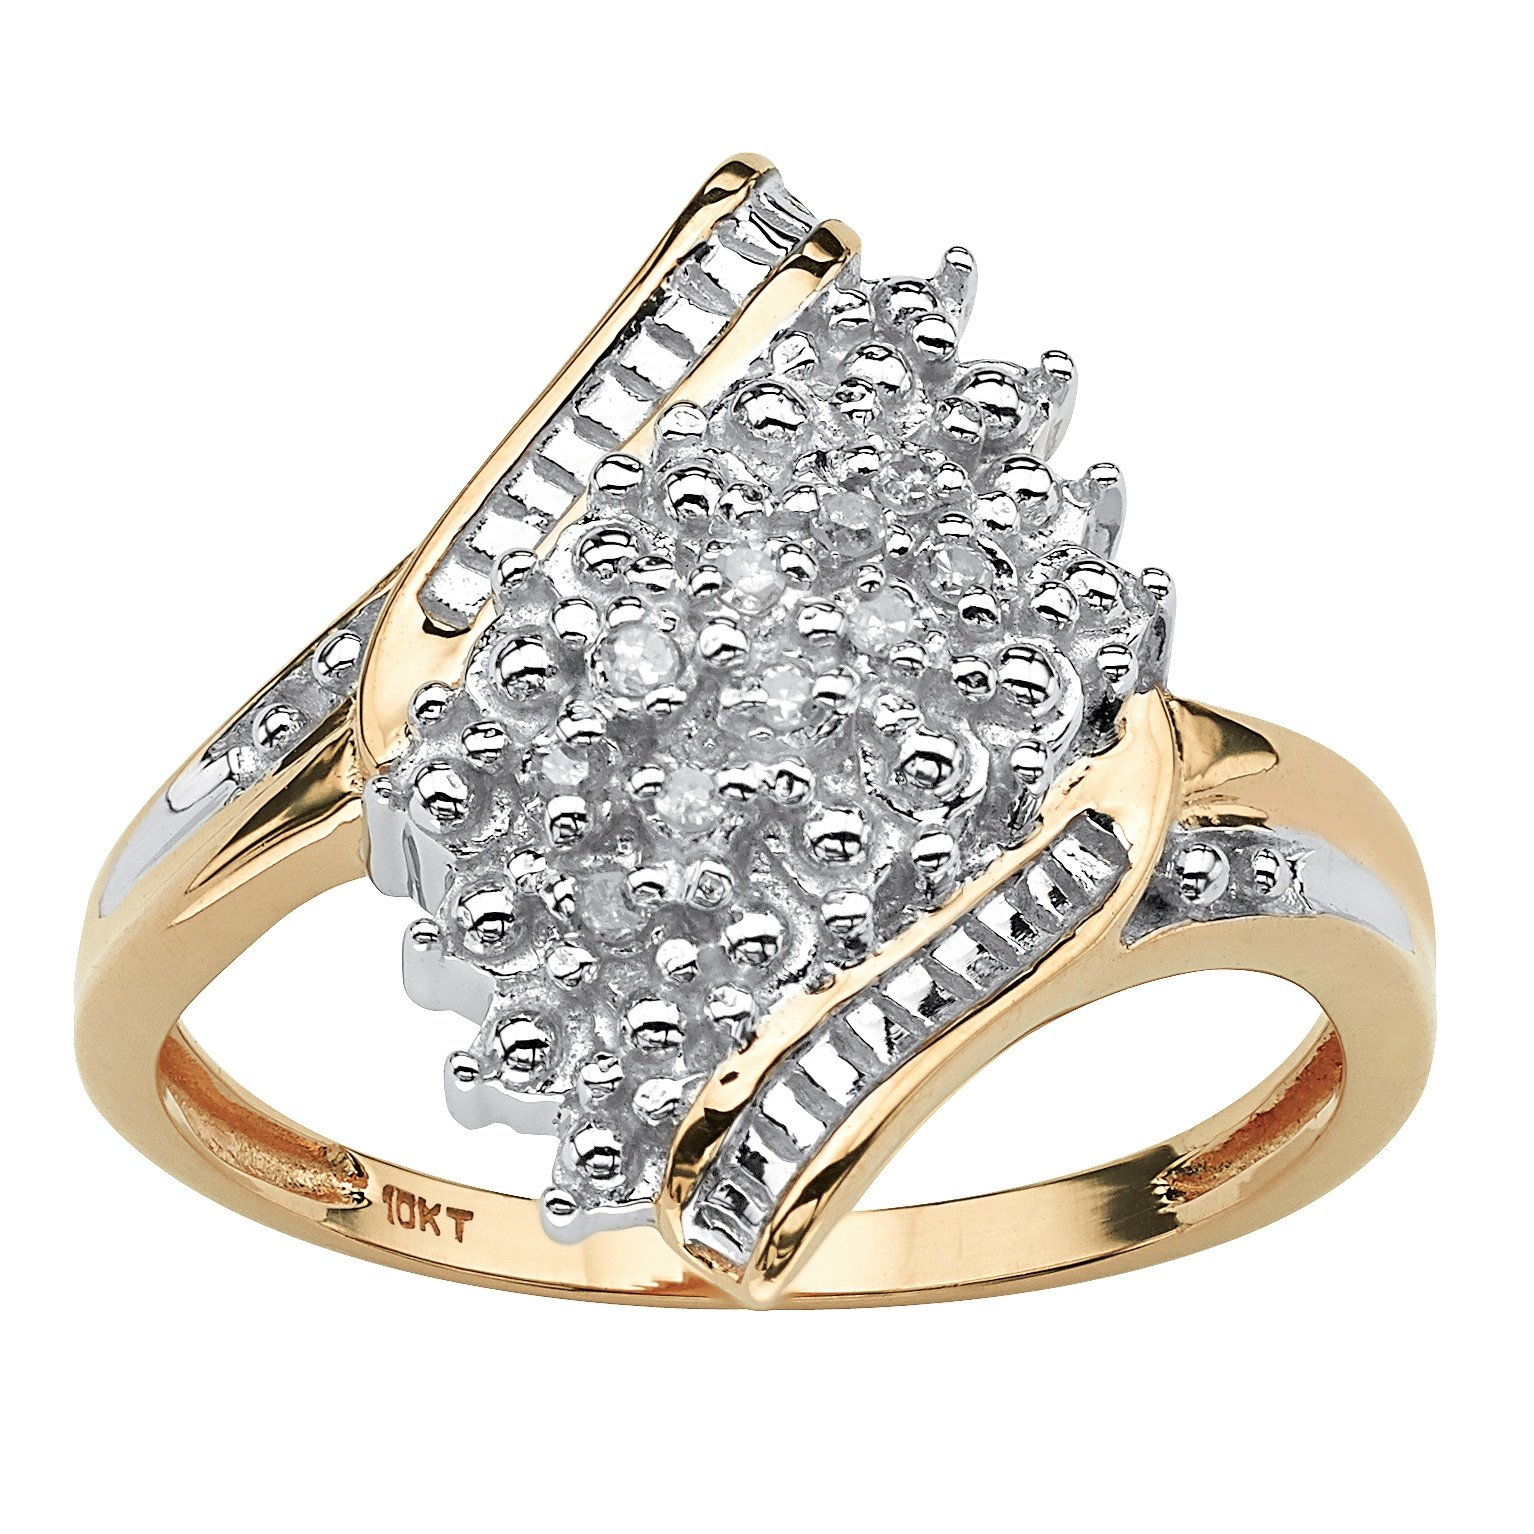 Solid 10K Yellow Gold Diamond Accent Bypass Cluster Ring by Seta Jewelry